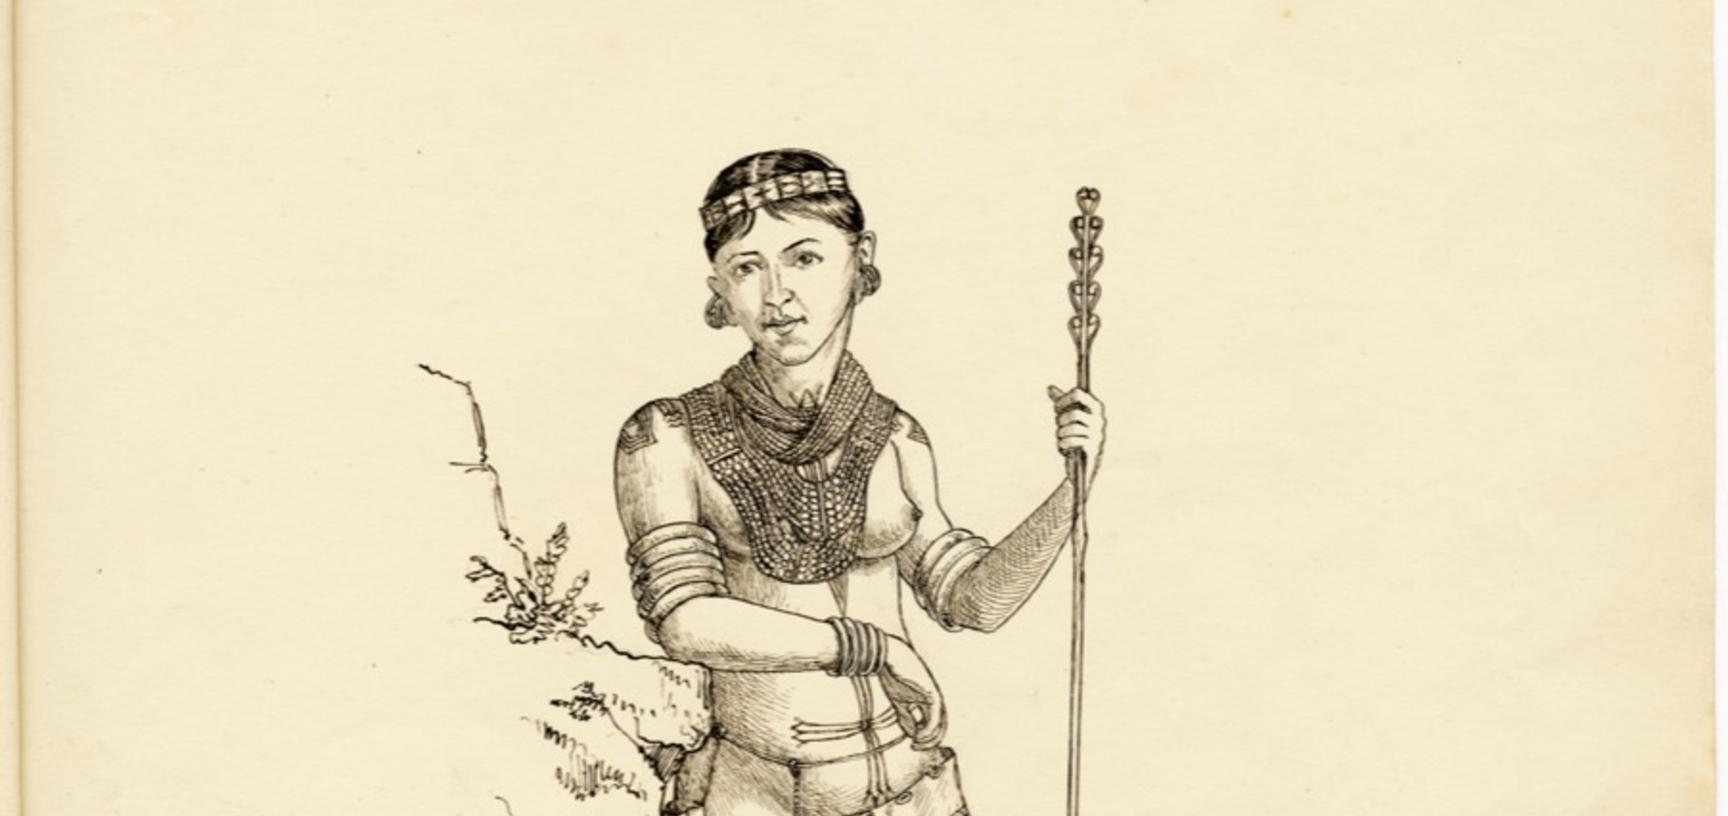 'Phemi – wife of Soibang' (handwritten caption). Portrait of a Konyak Naga woman named Phemi, the wife of Soibang, chief of Chopnu in the Naga Hills District of Assam (now in Nagaland), India. Ink drawing by Robert Gosset Woodthorpe. 1875. (Copyright Pitt